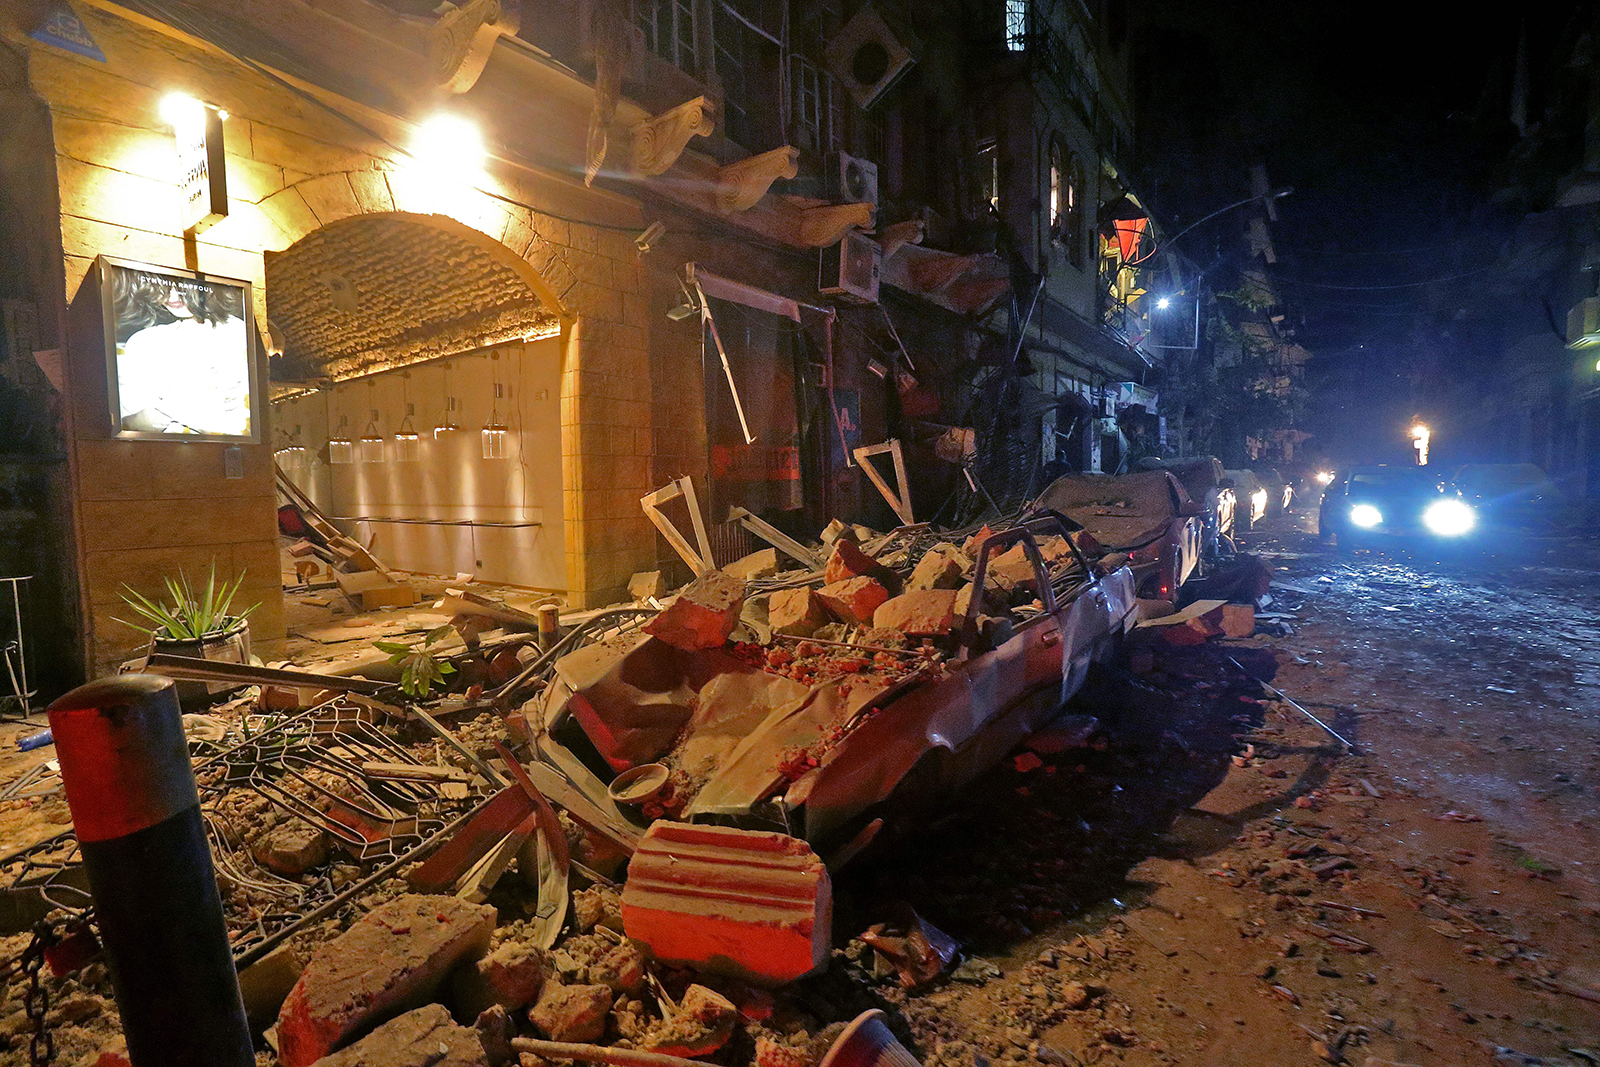 deadly explosion in beirut shocks the world trump said it looks like a terrible attack